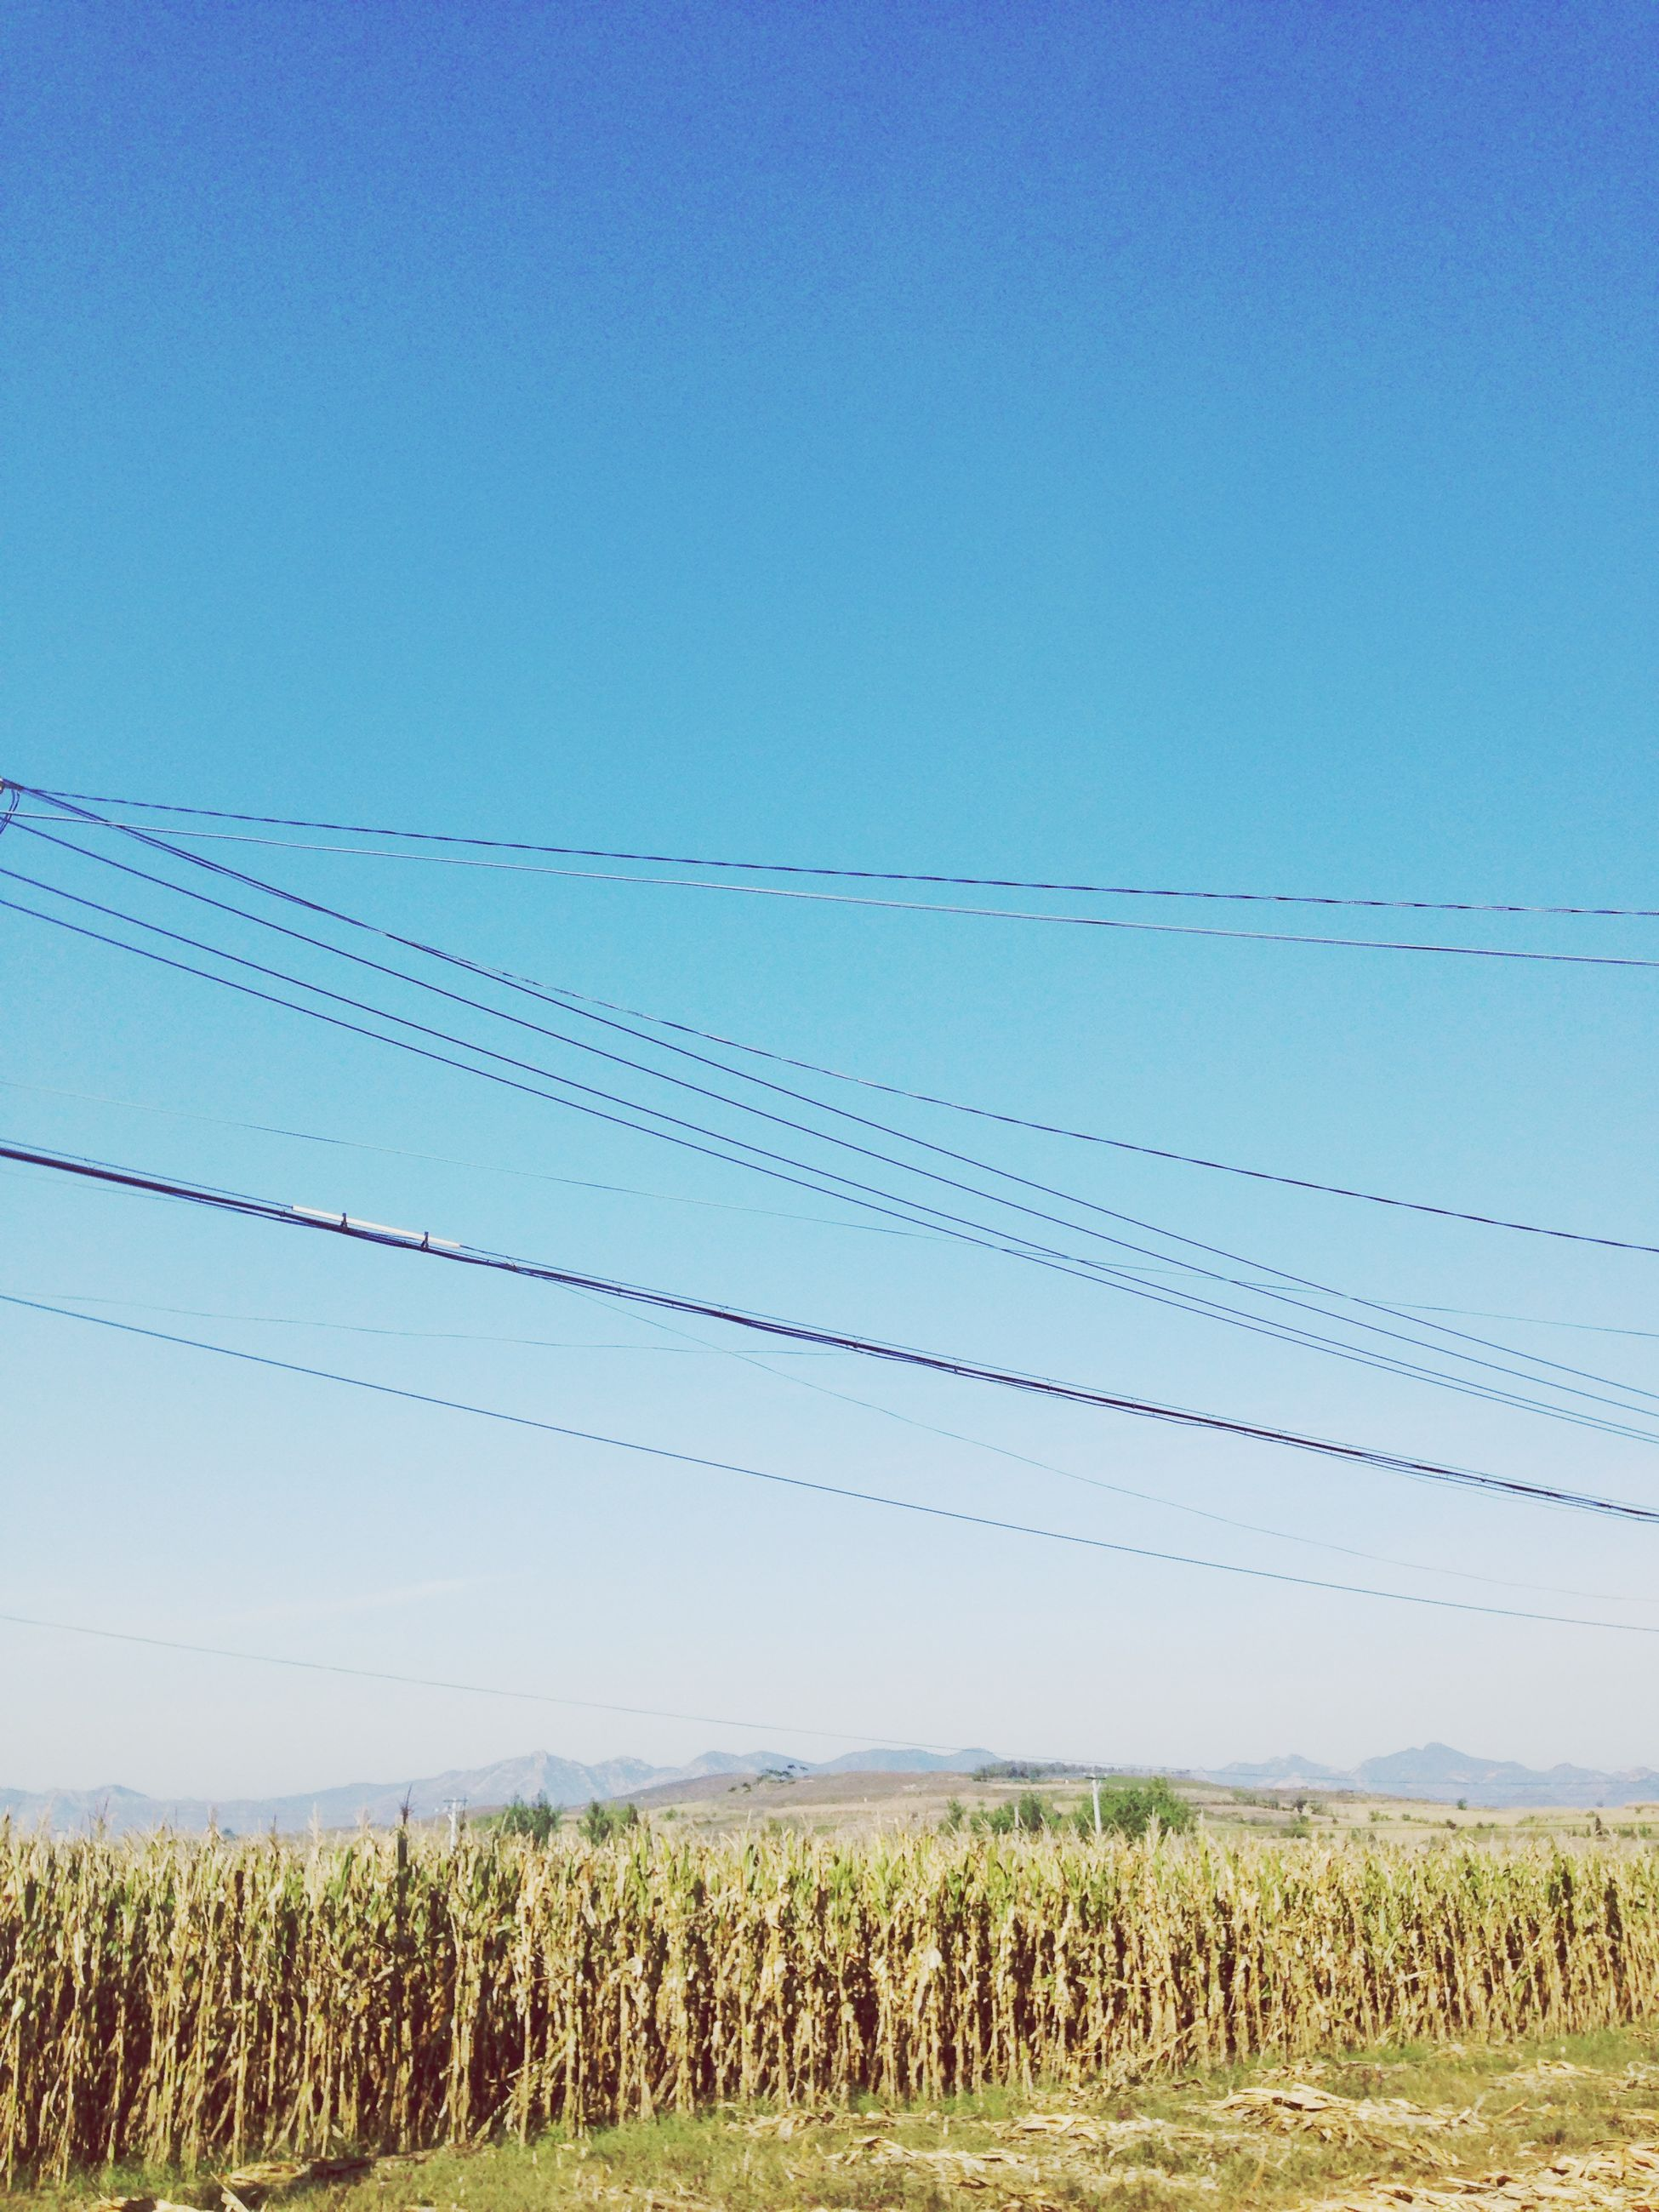 bird, animal themes, animals in the wild, wildlife, clear sky, flying, field, copy space, blue, nature, perching, flock of birds, tranquility, grass, low angle view, tranquil scene, landscape, beauty in nature, sky